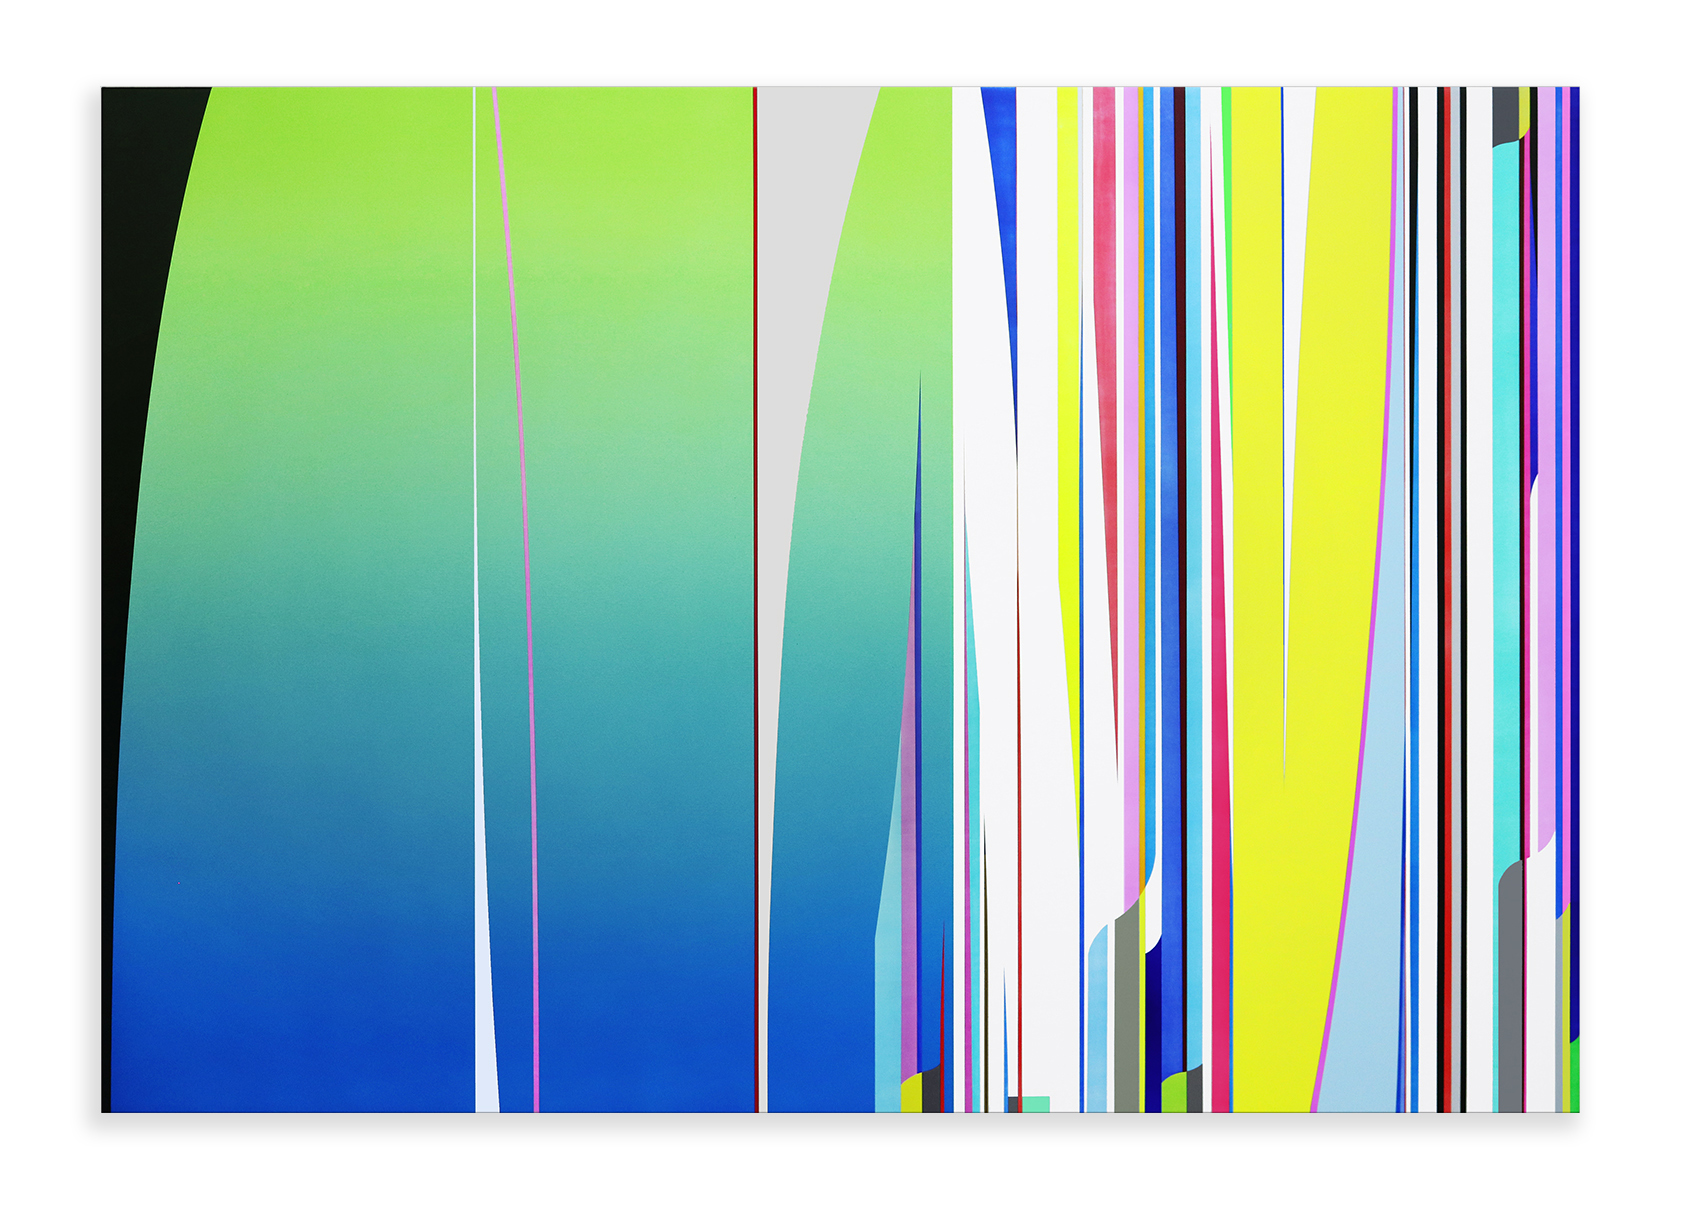 Dion Johnson, Dream Racer, 2017, acrylic on canvas, 48 x 72 inches